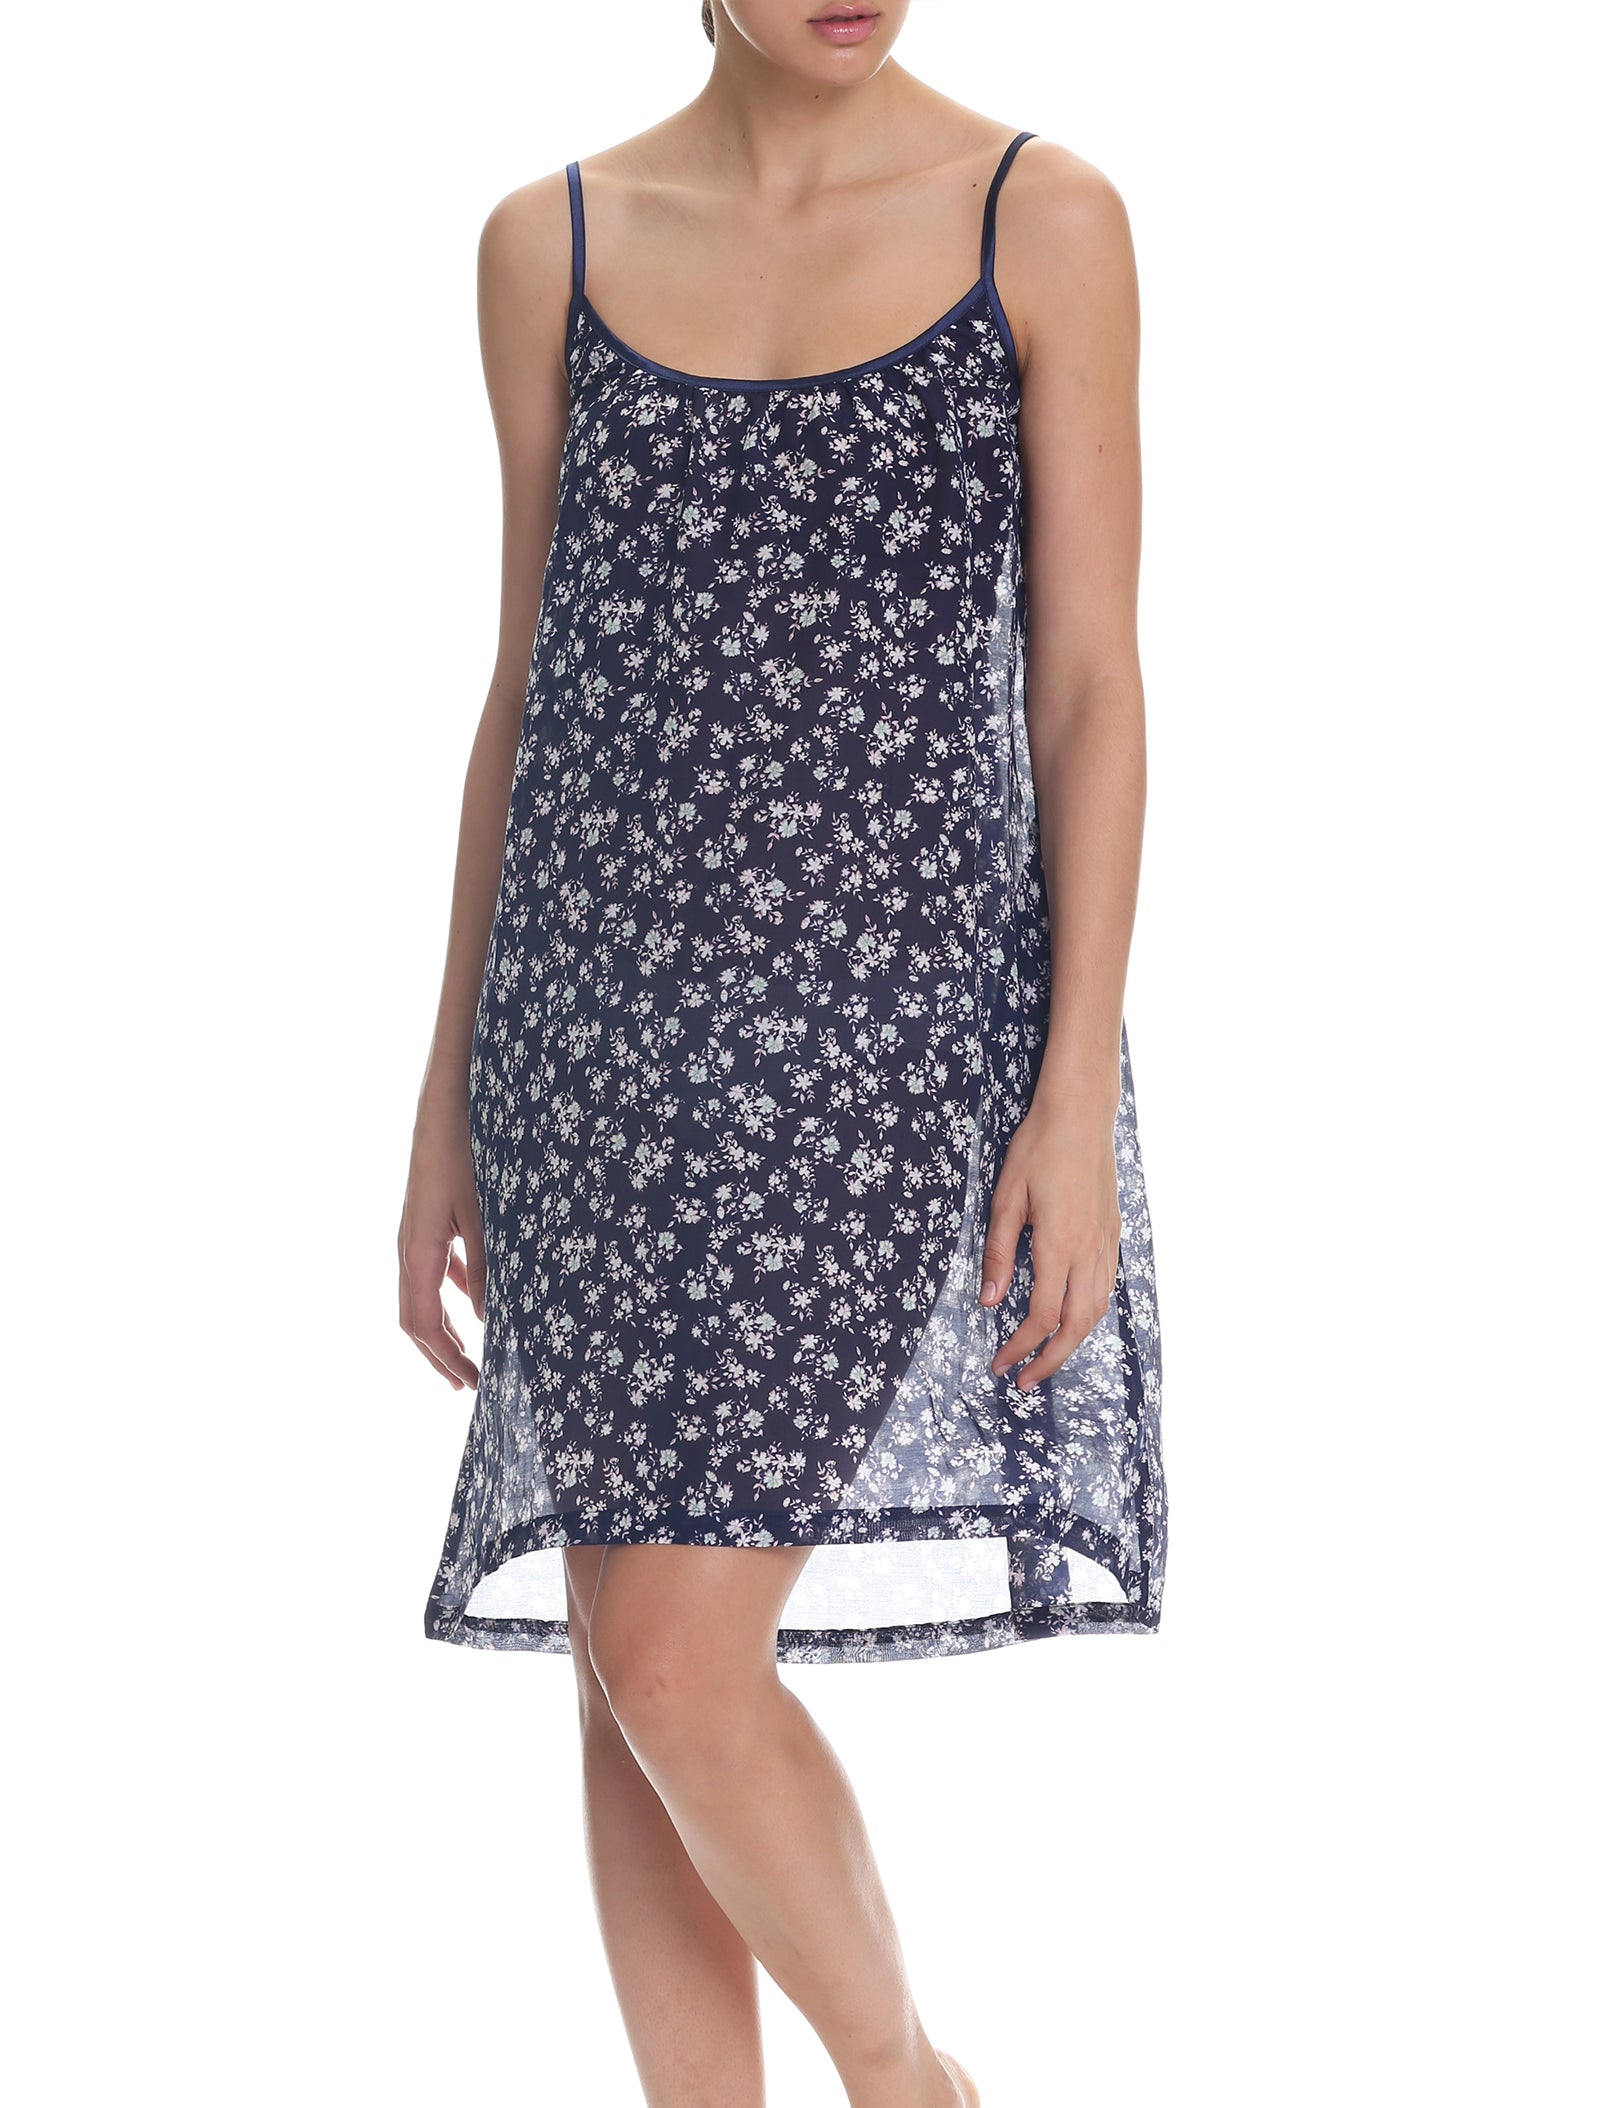 Potager Navy Strappy Nightgown